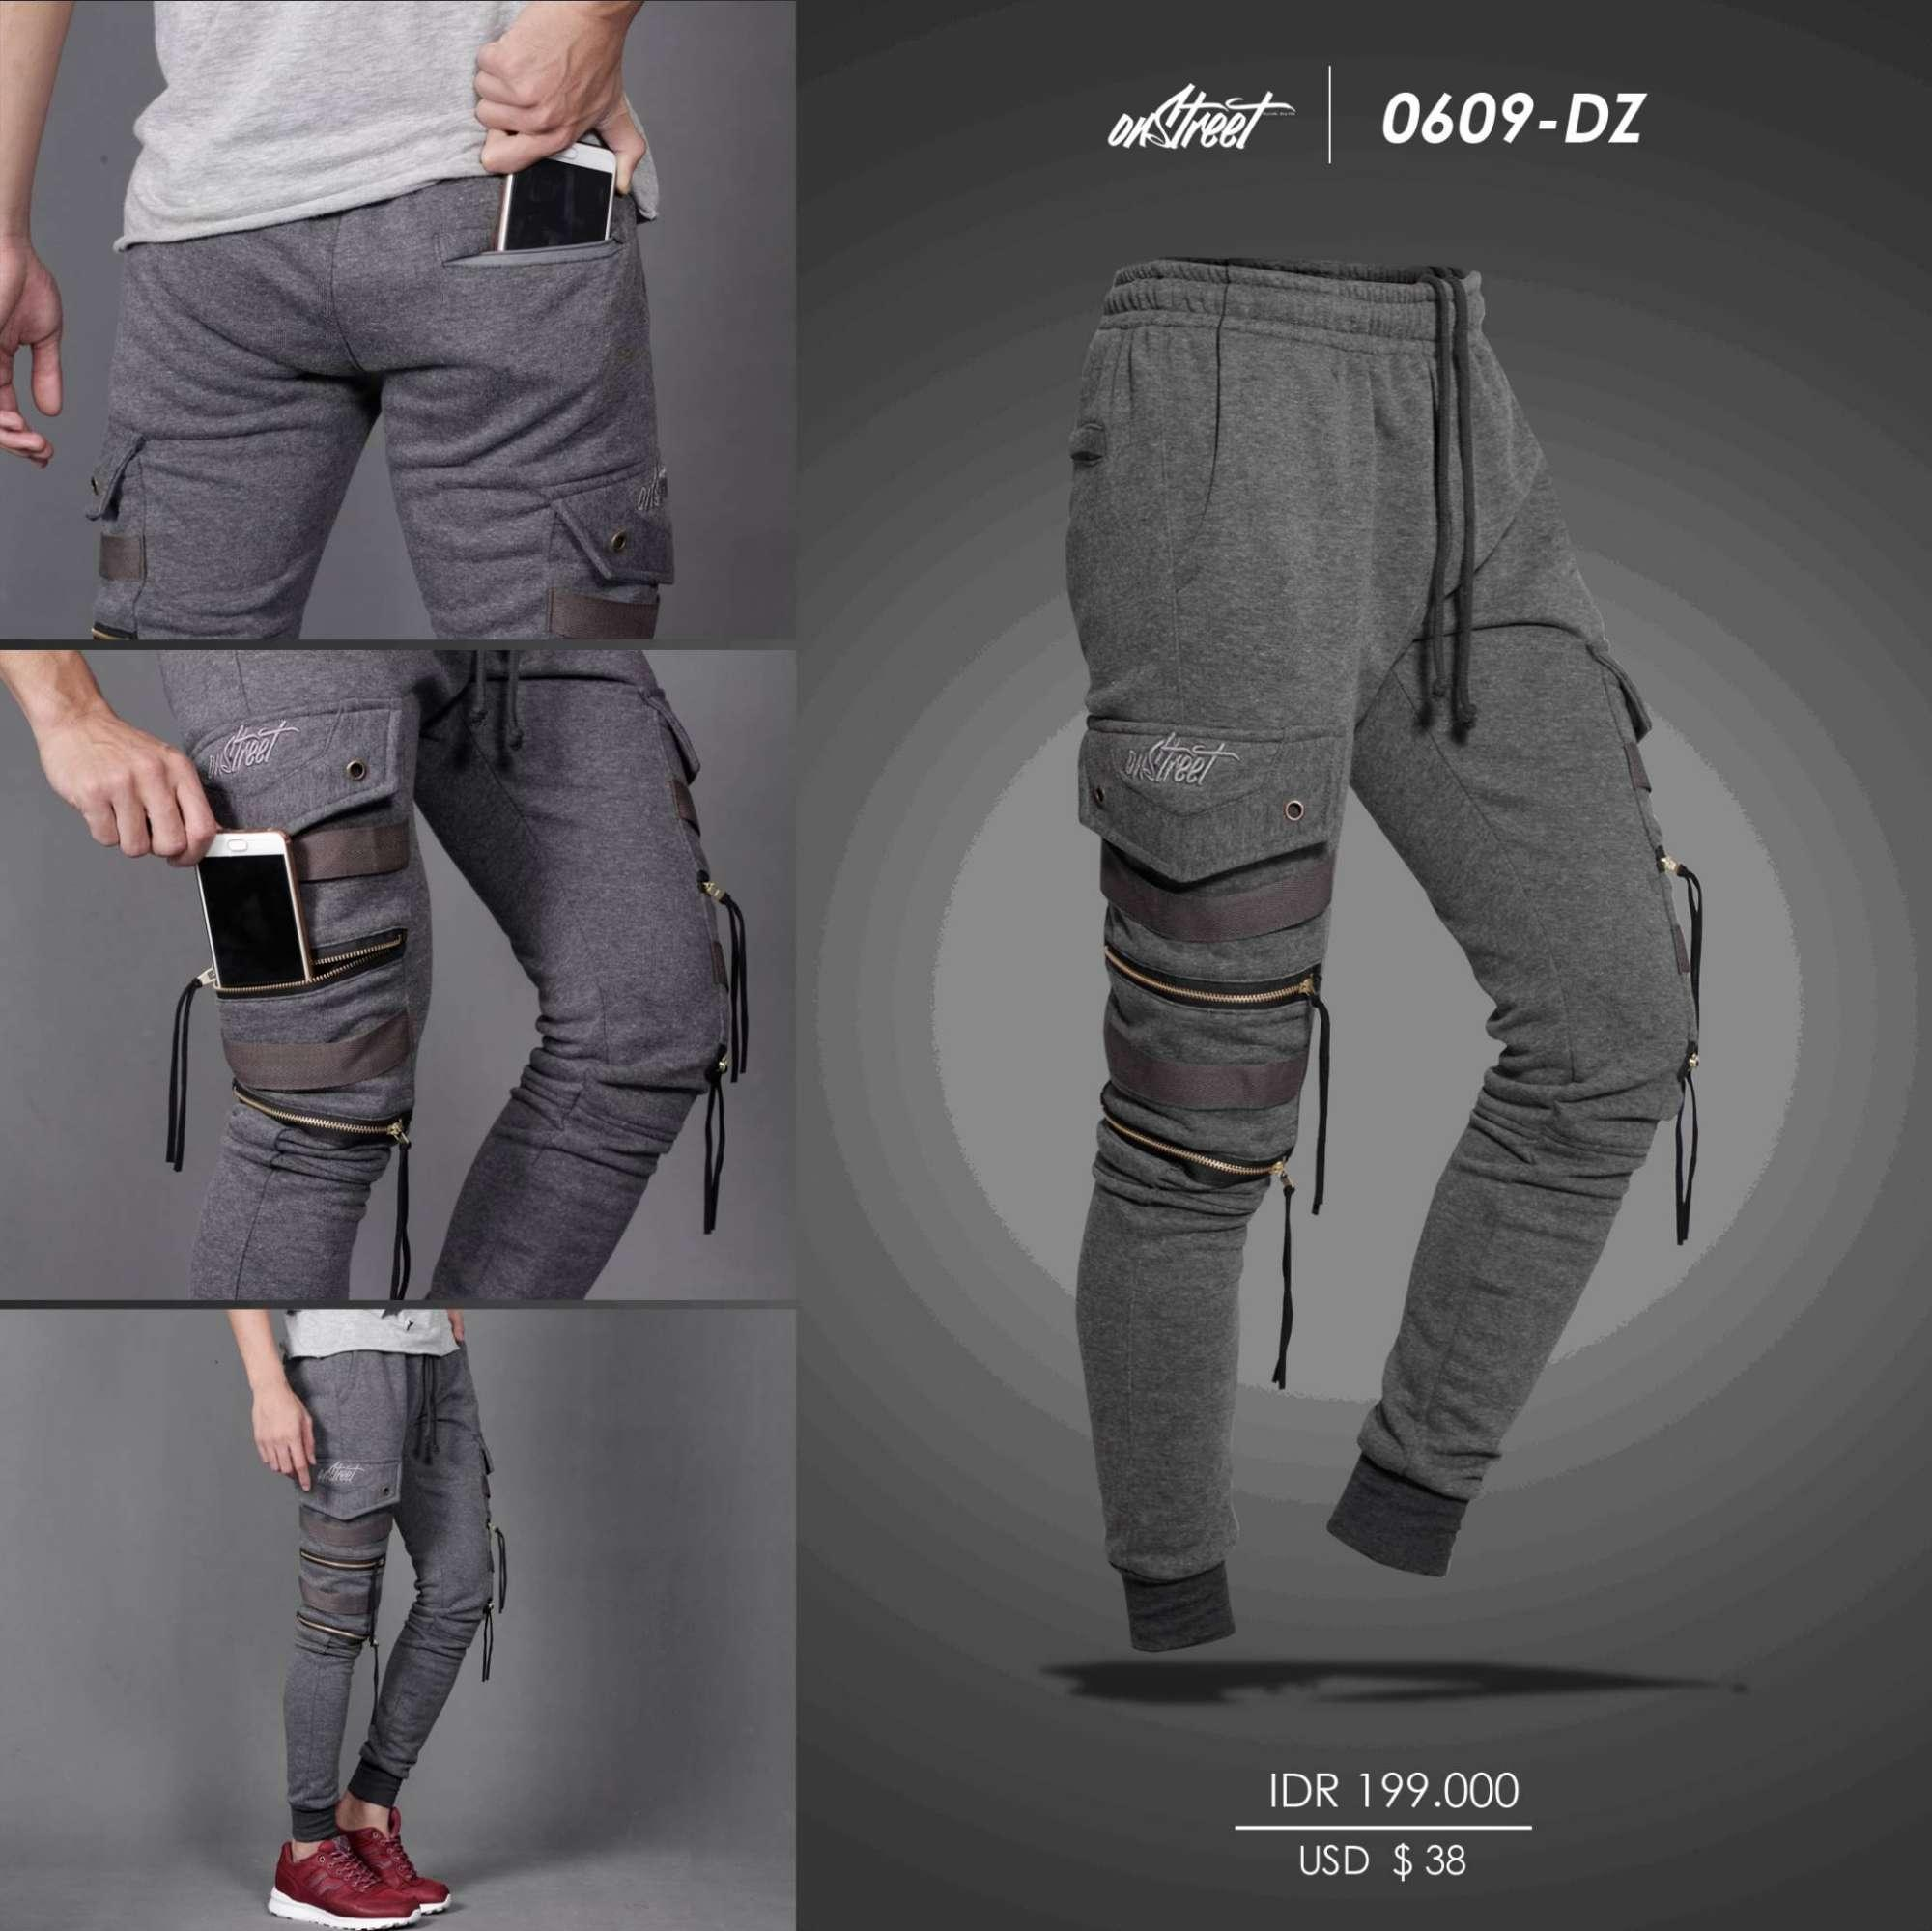 JOGERPANTS DOUBLE ZIPPER DARK GREY - JOGGERPANTS ONSTREET - CELANA JOGER